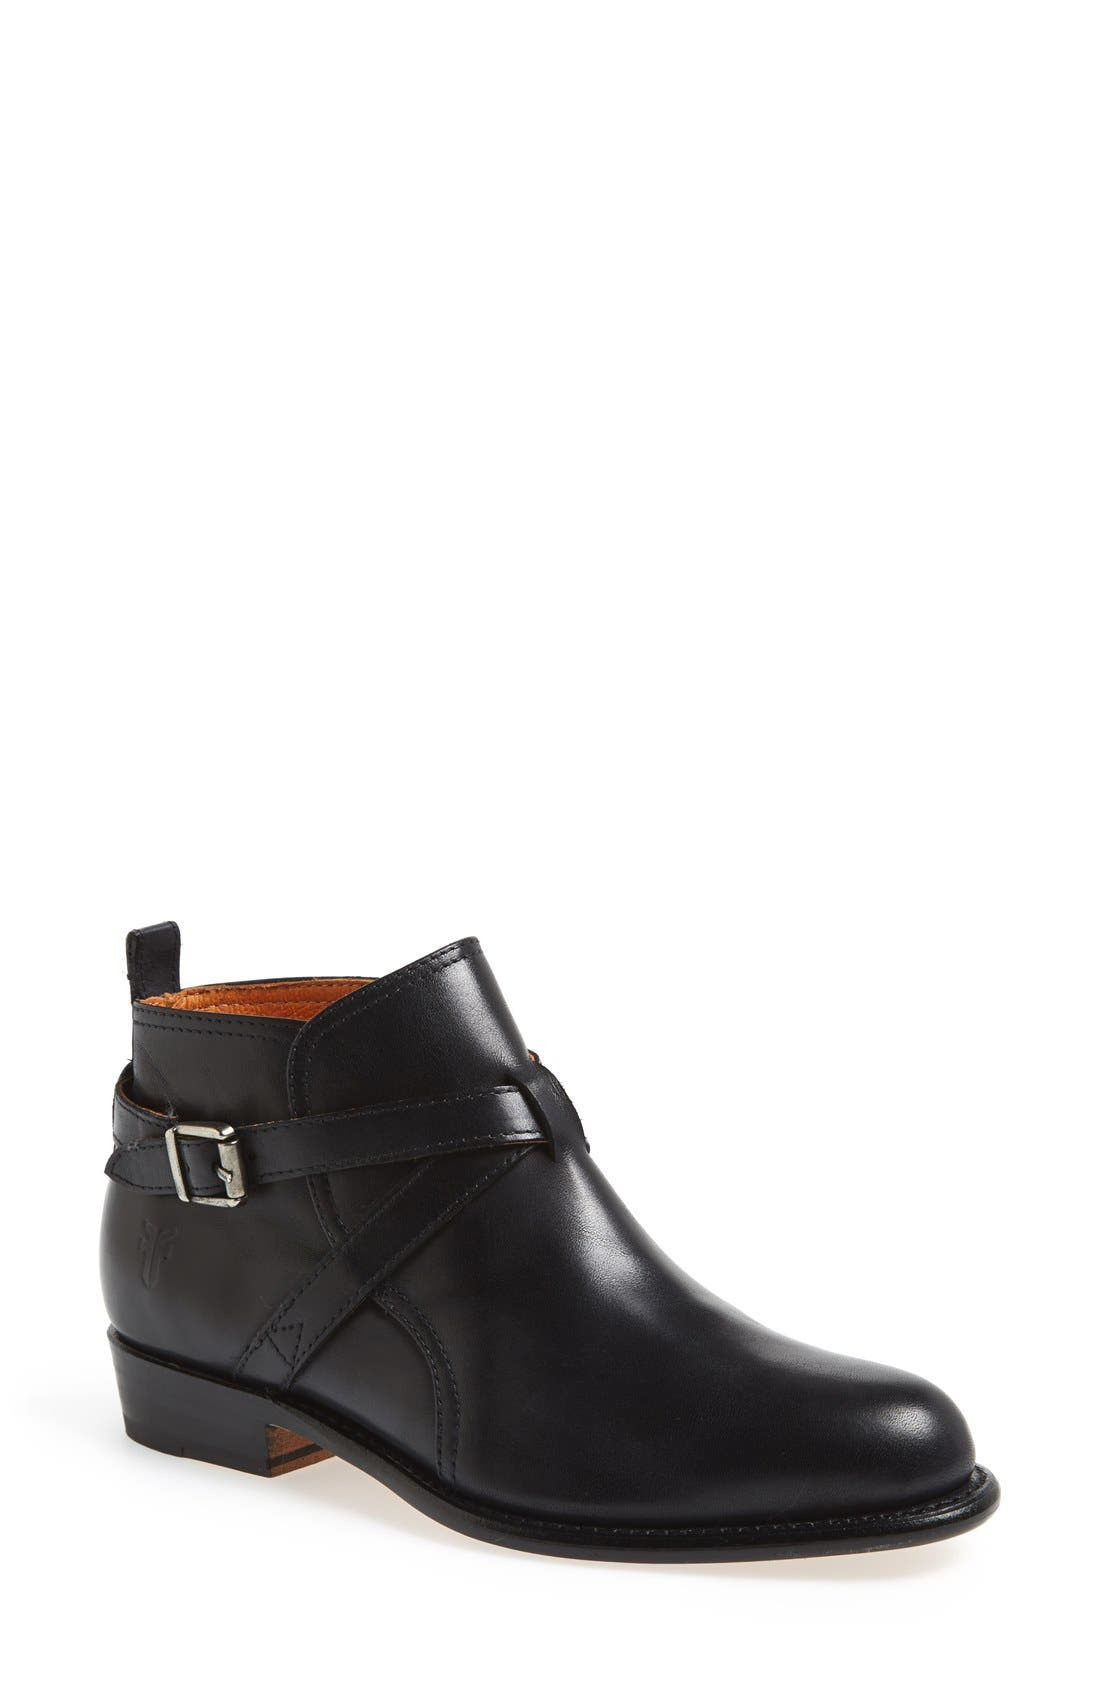 Main Image - Frye 'Dorado' Leather Ankle Boot (Women)